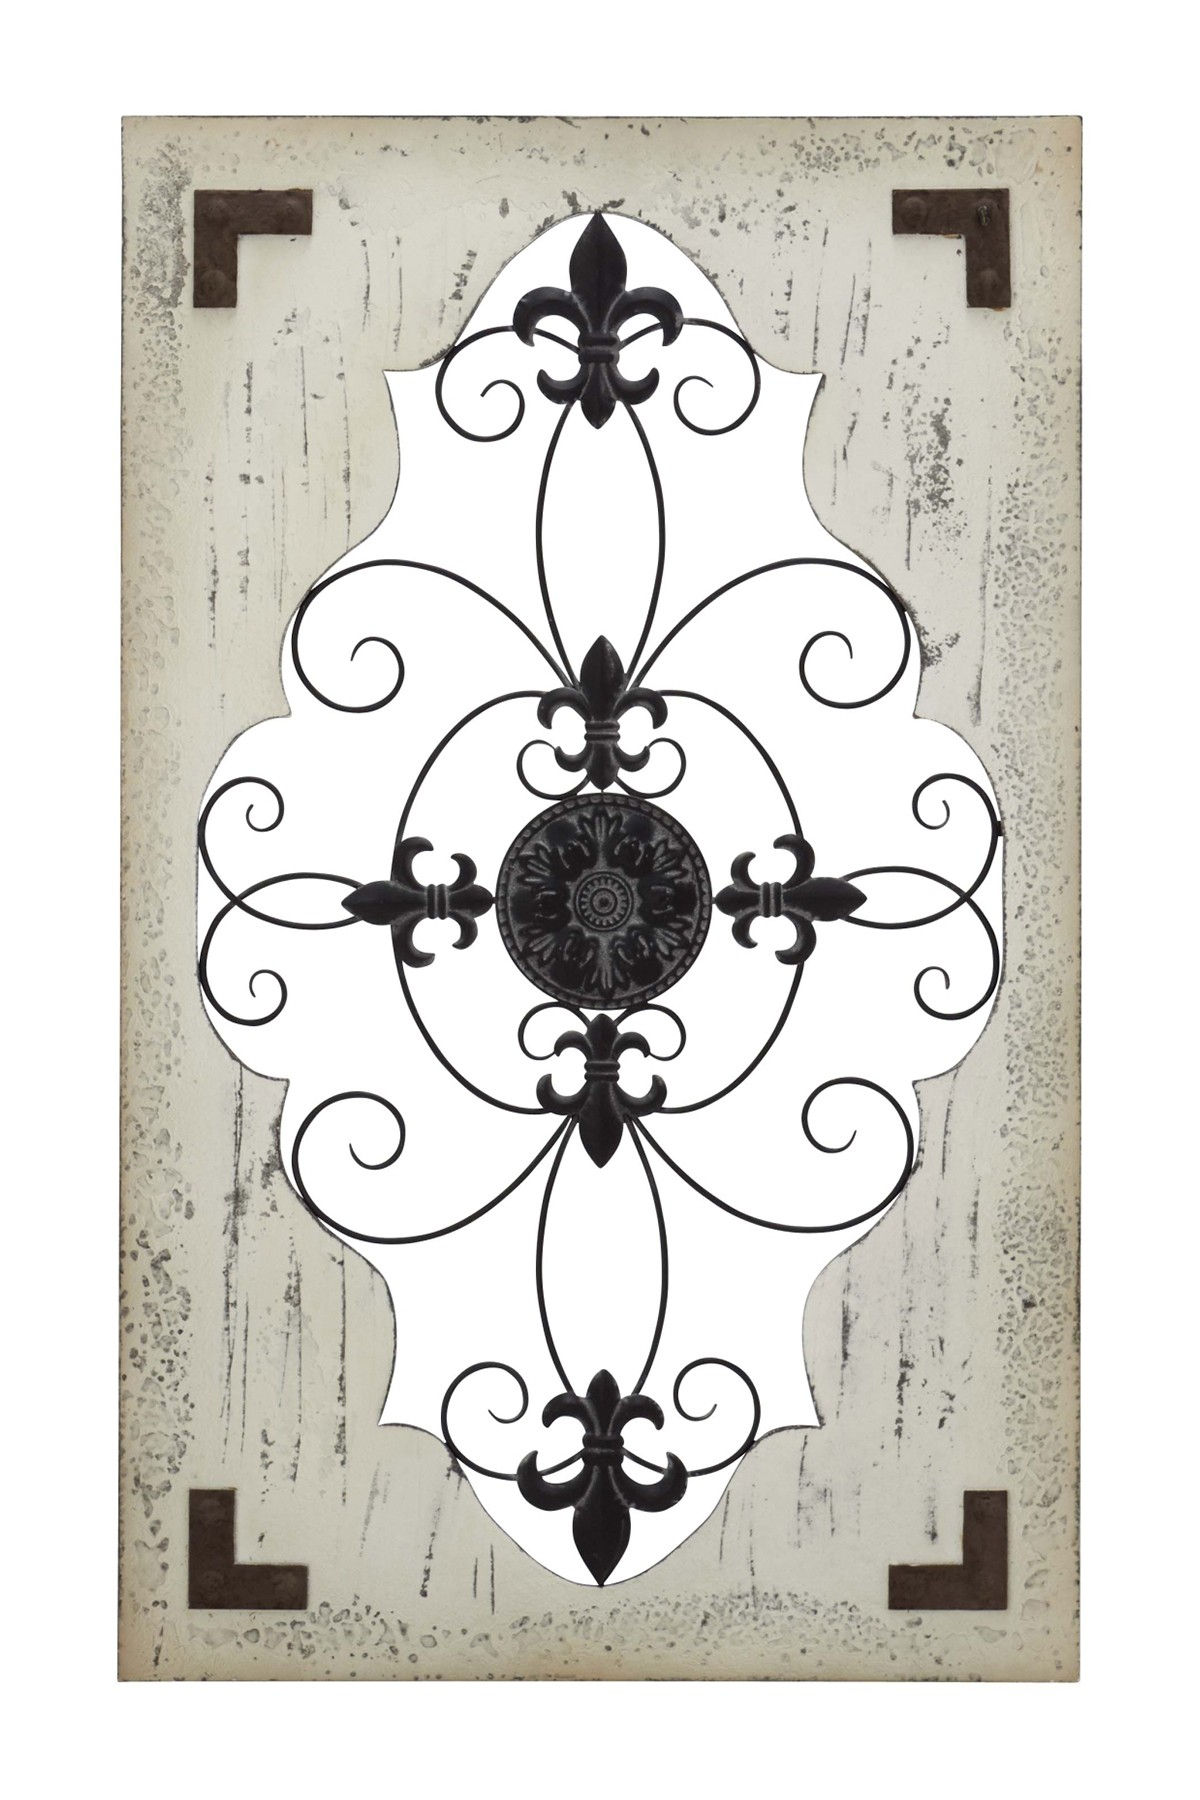 Uma | Rustic Wood And Iron Scroll And Fleur De Lis Framed Wall Decor | Nordstrom Rack For Scroll Framed Wall Decor (View 27 of 30)